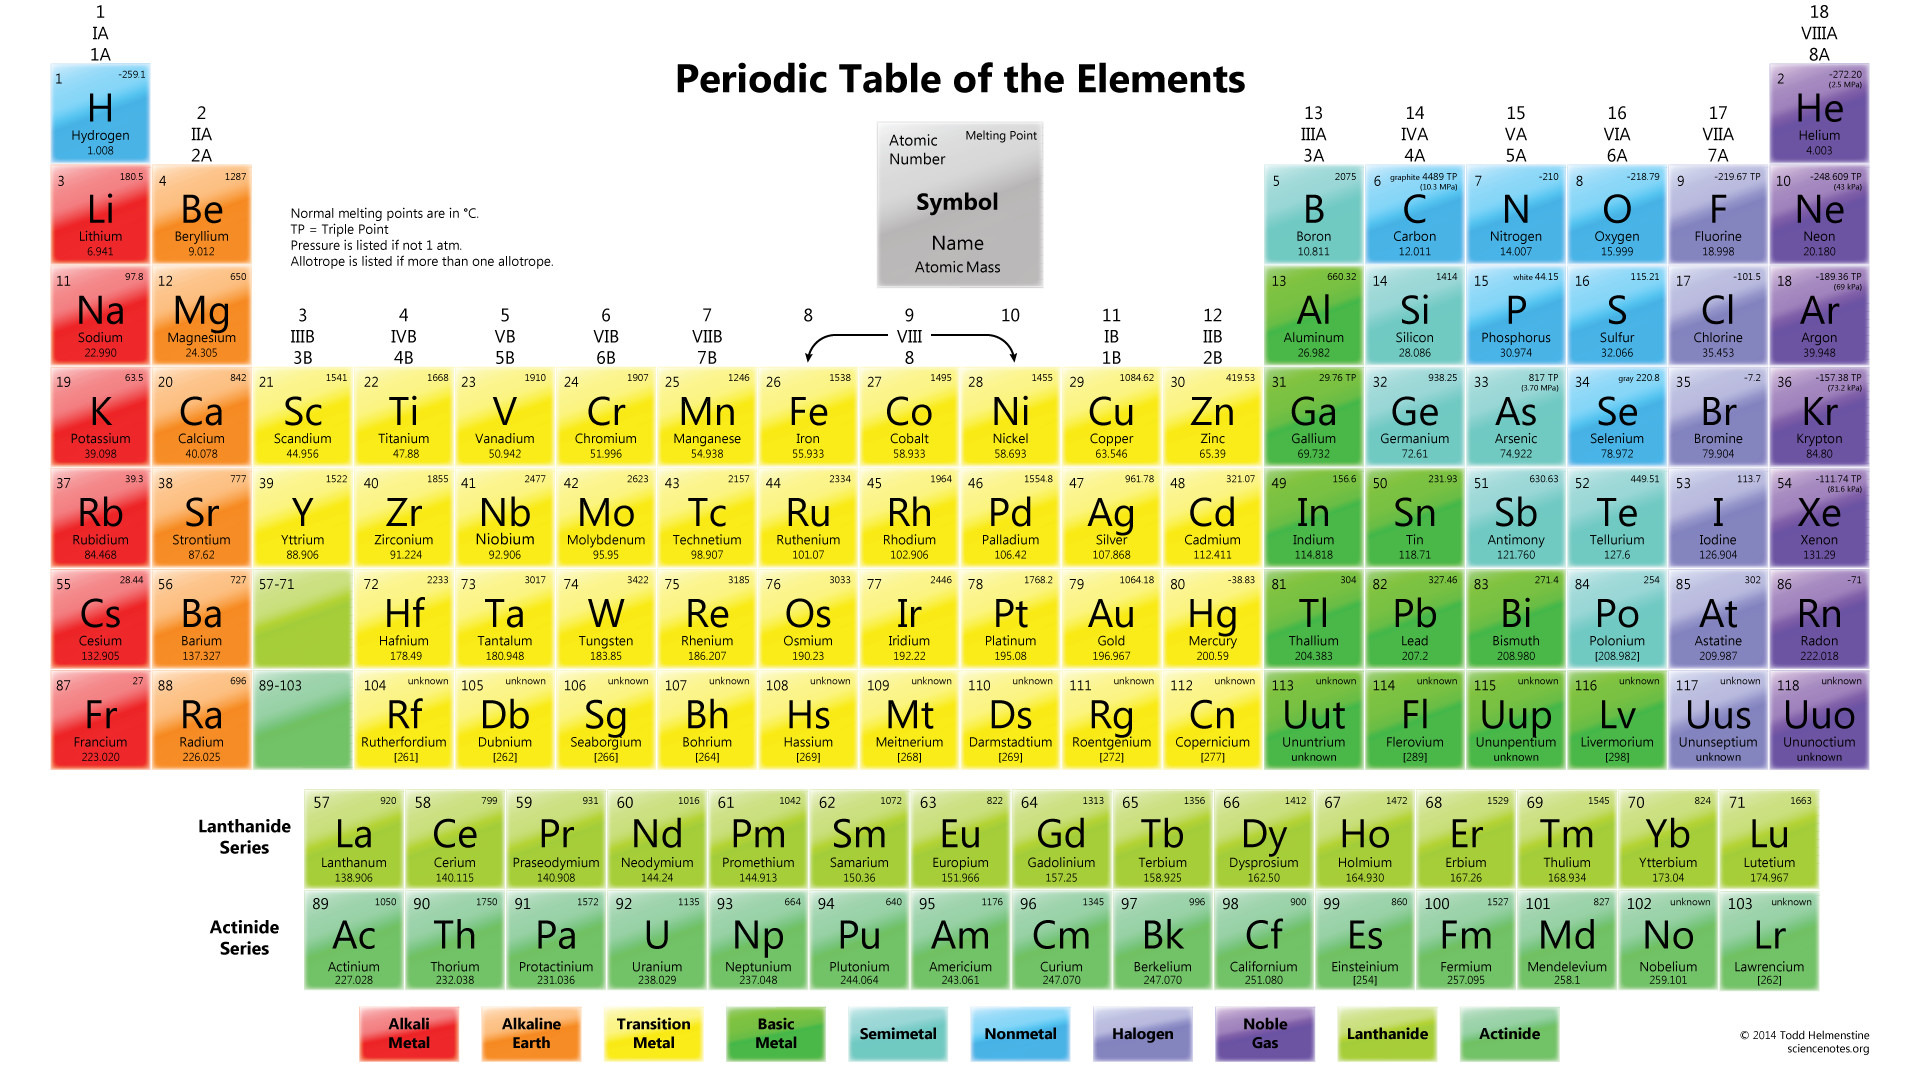 Kryptonite on the periodic table images periodic table images periodic table melting points images periodic table images is kryptonite on the periodic table choice image gamestrikefo Gallery